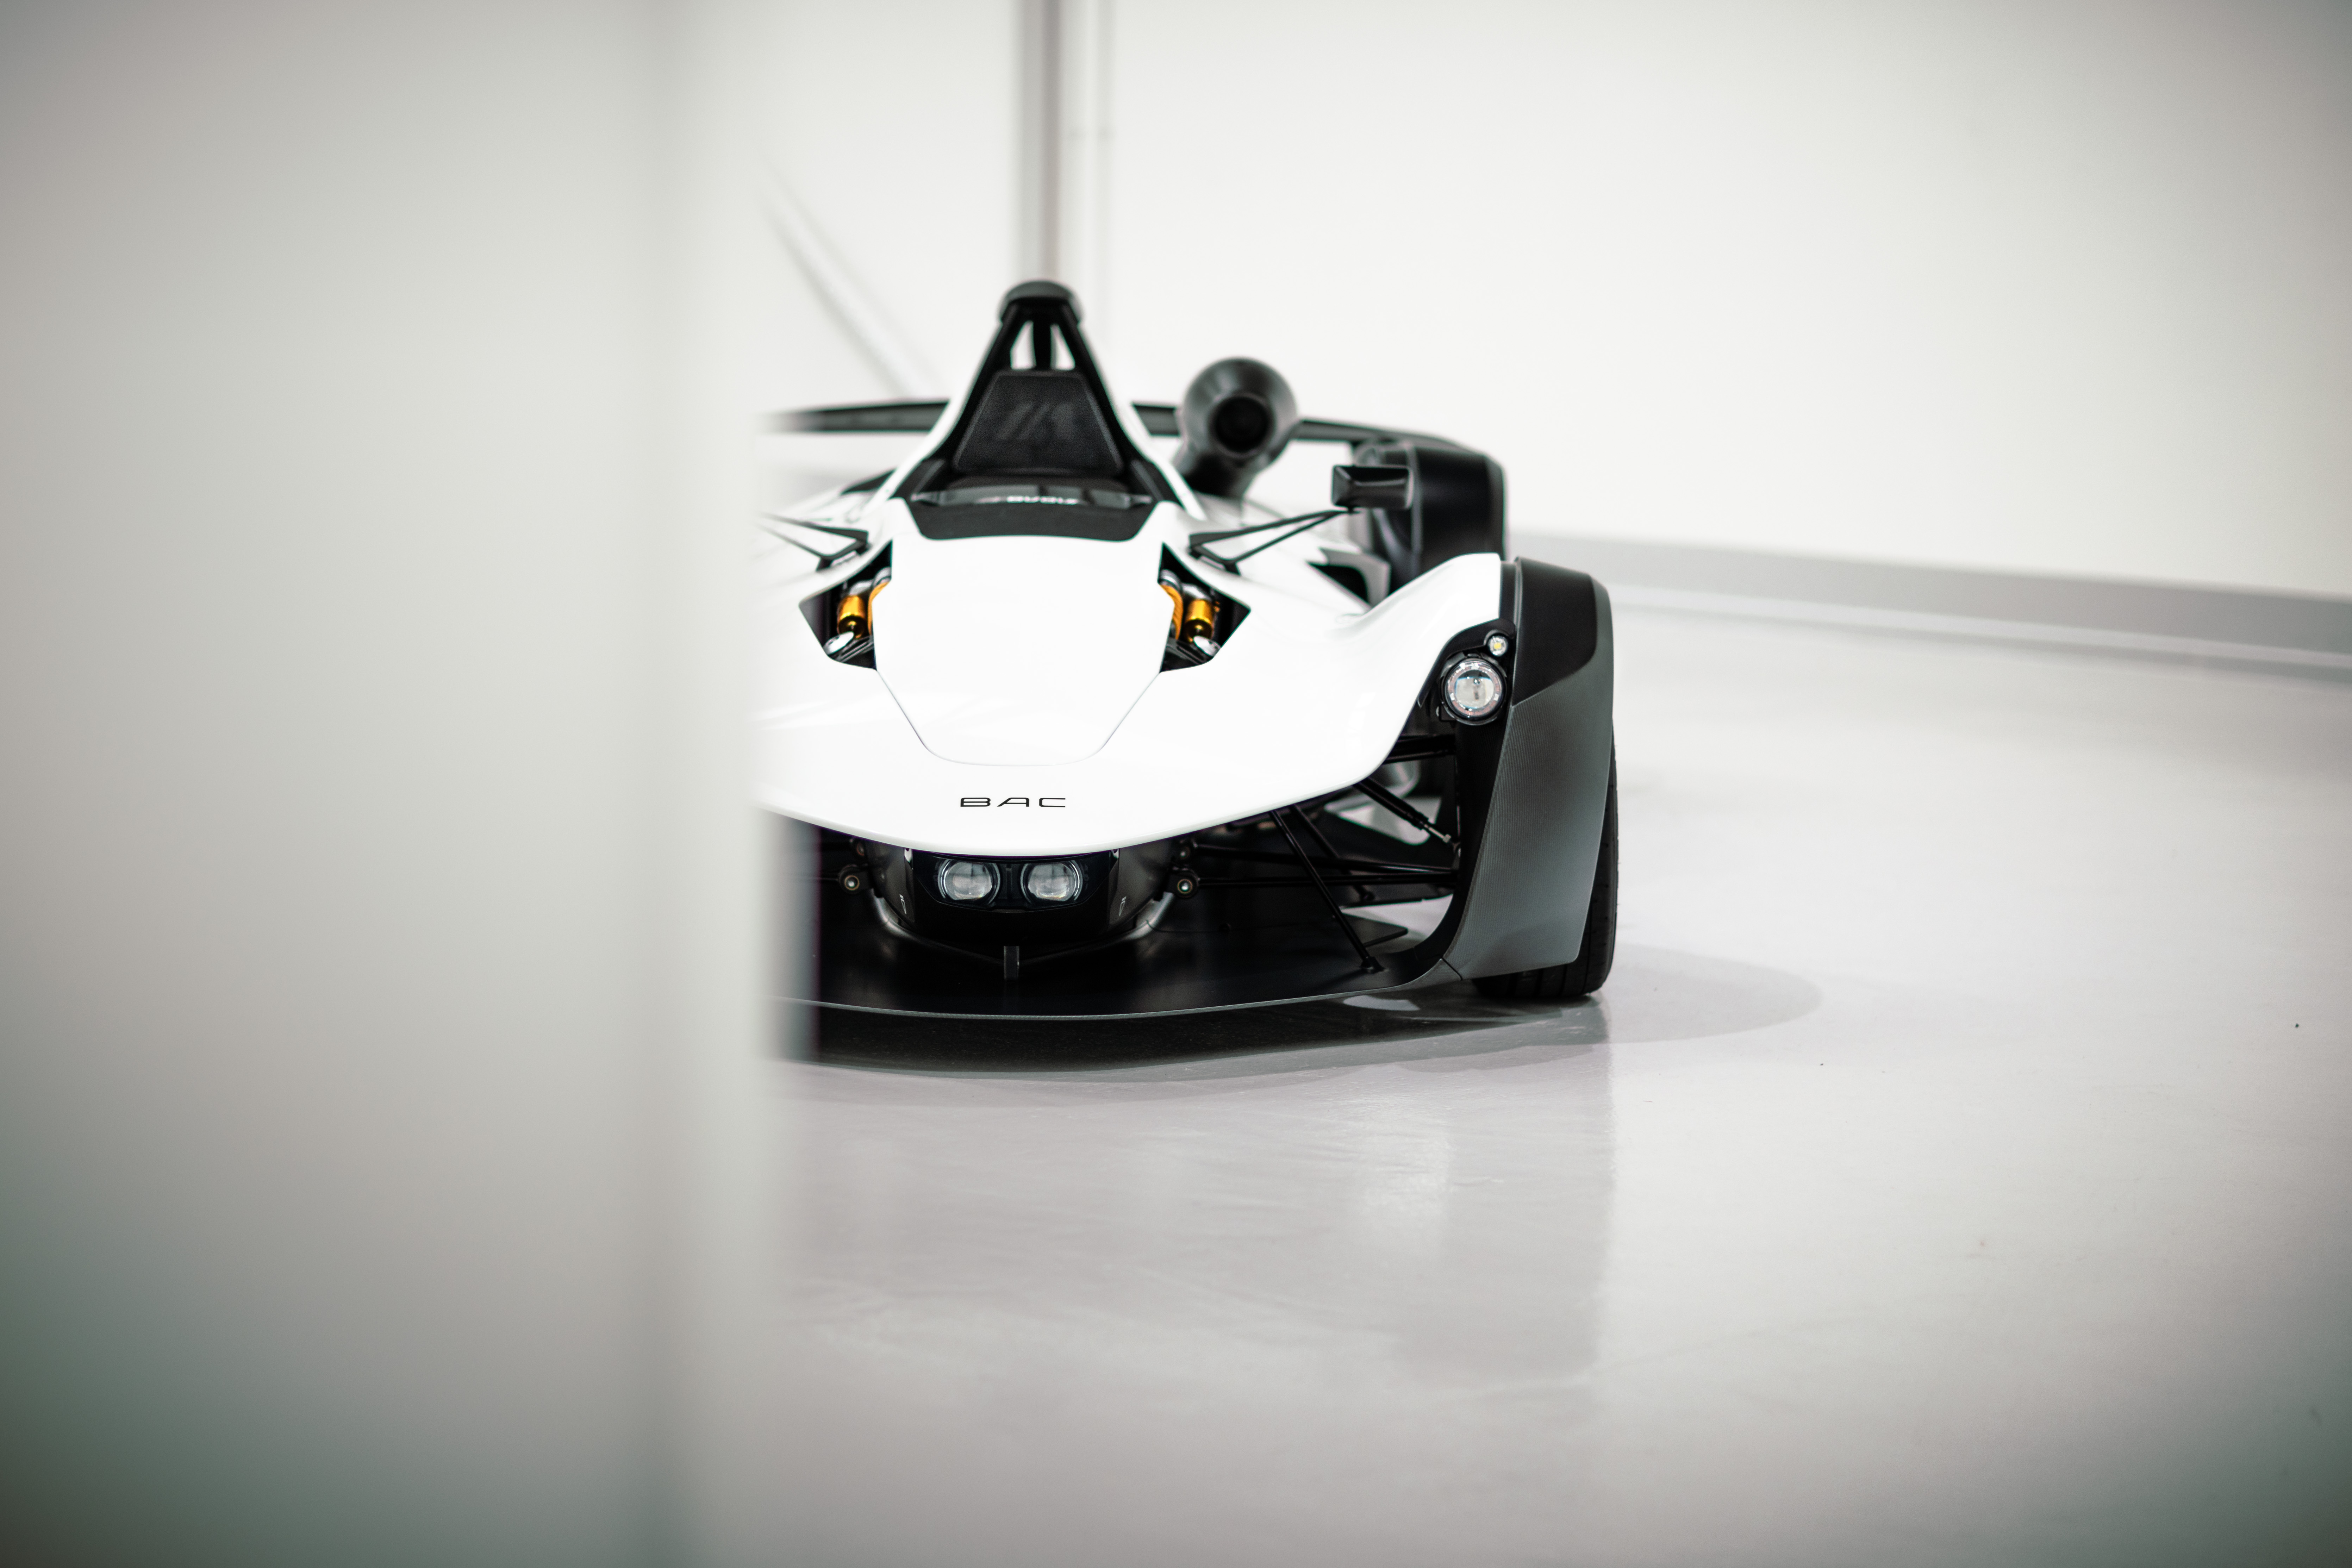 The BAC Mono R pushes the envelope even further